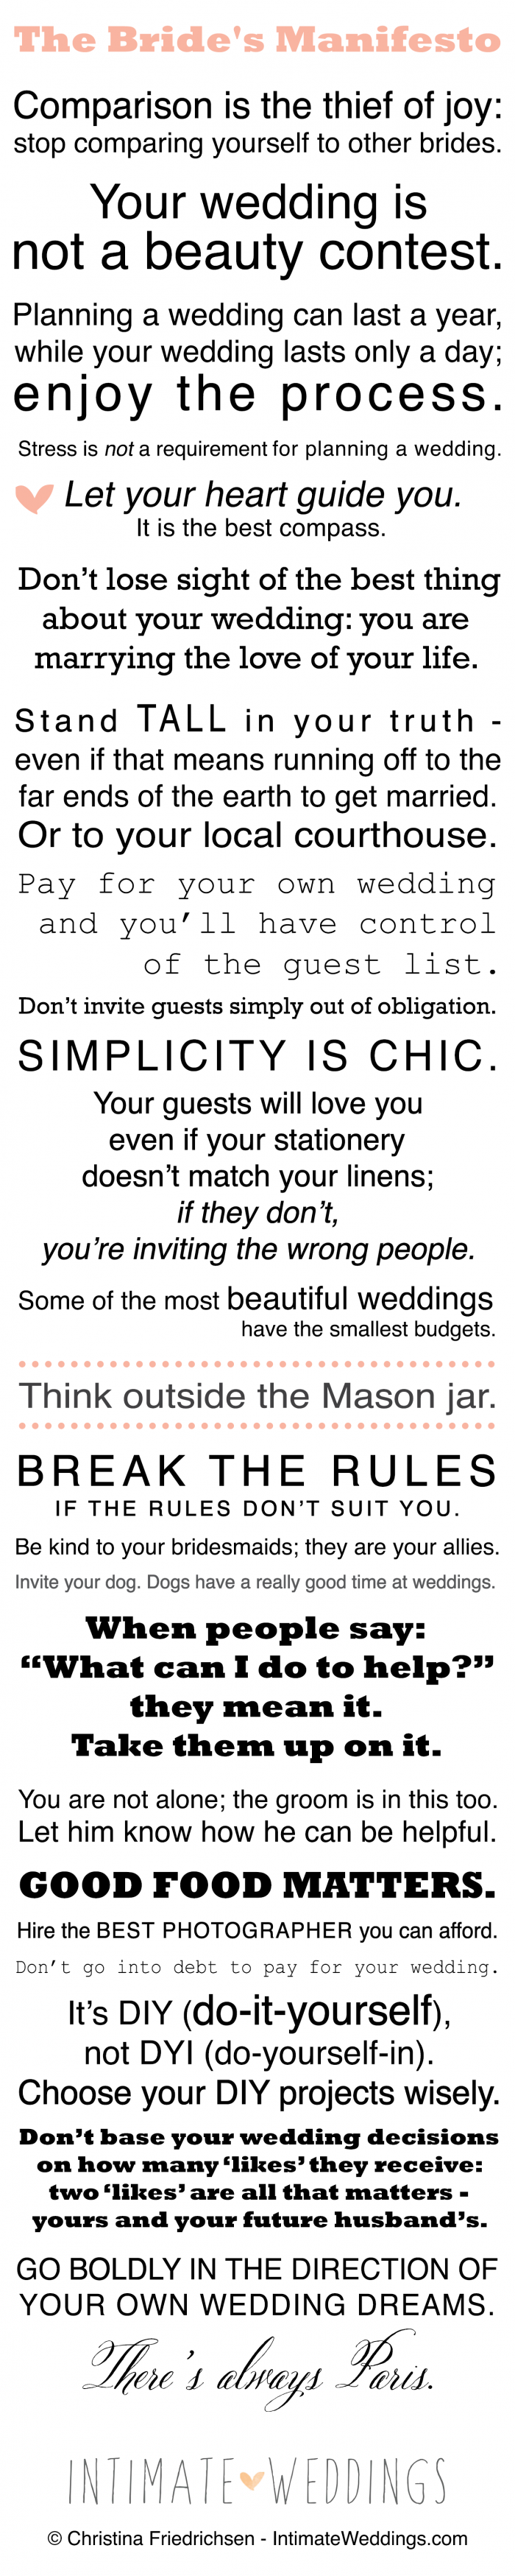 The Bride's Manifesto from IntimateWeddings.com